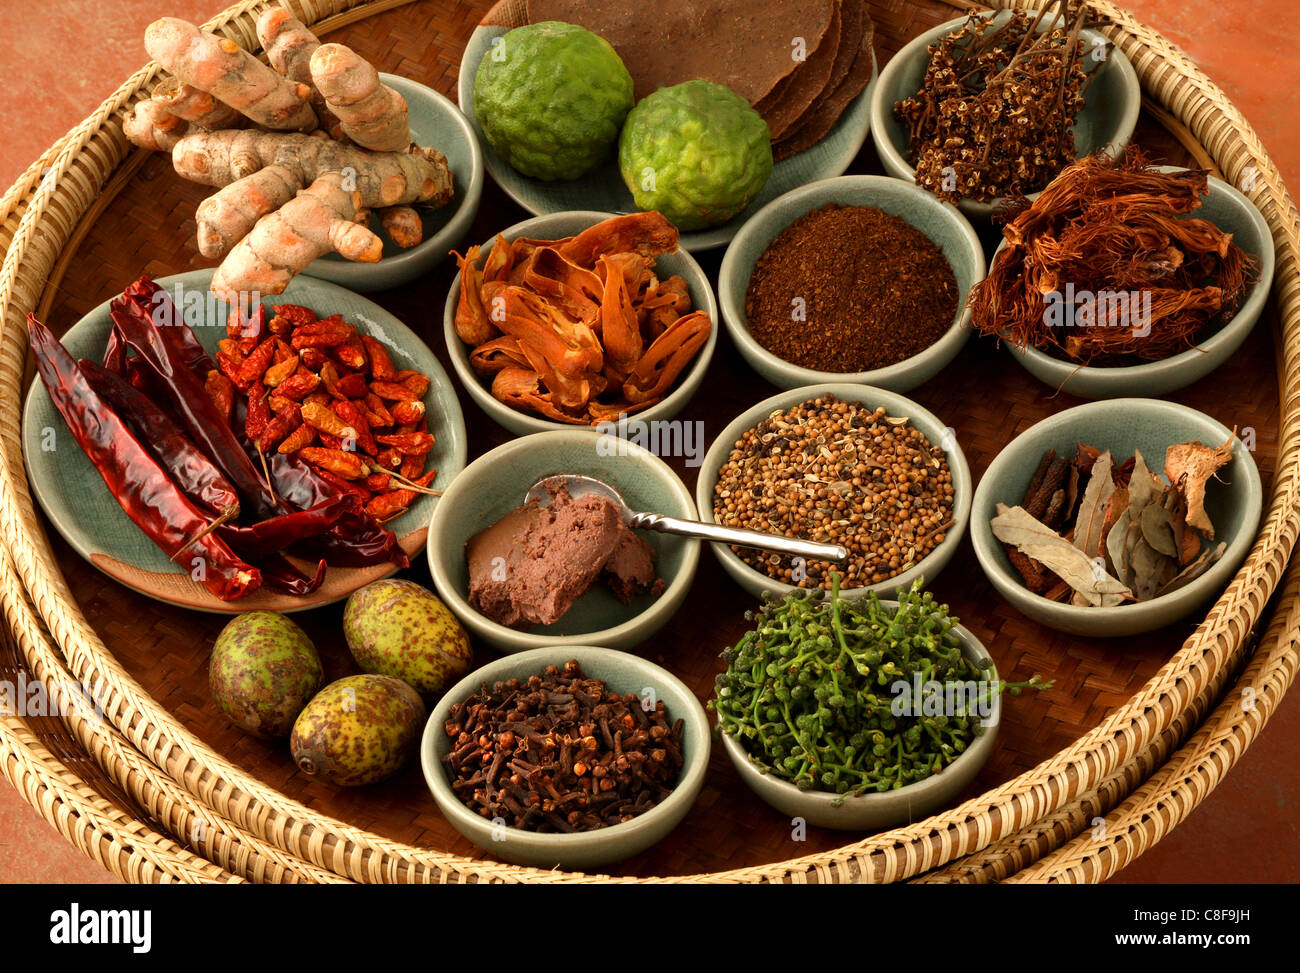 What Spices Are Commonly Used In Indian Food